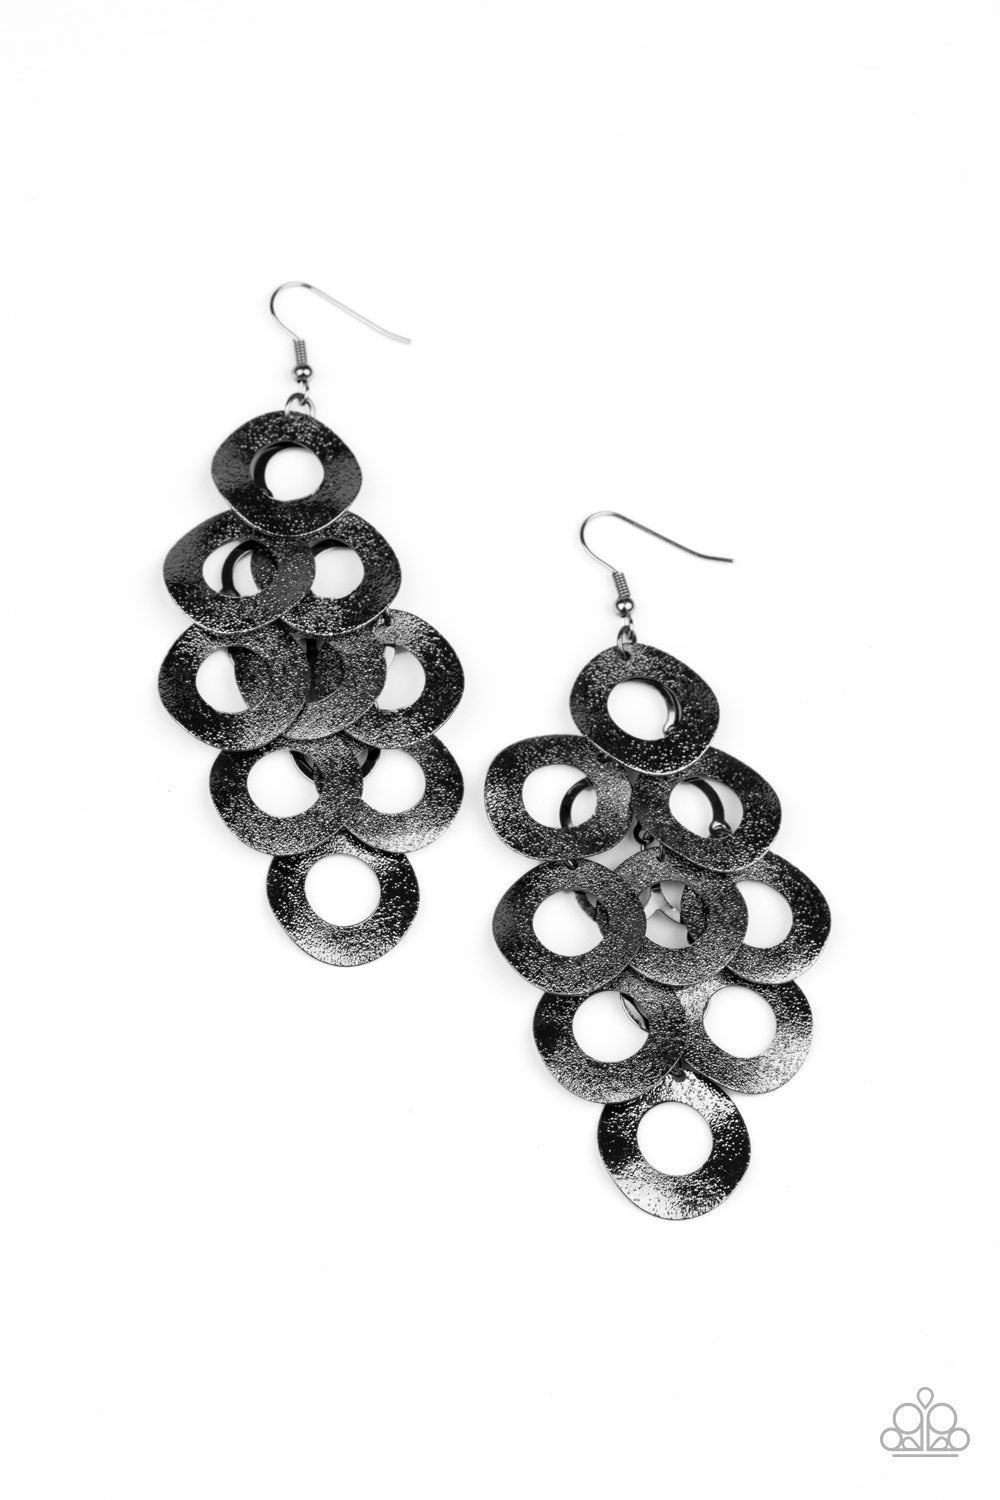 five-dollar-jewelry-scattered-shimmer-black-earrings-paparazzi-accessories